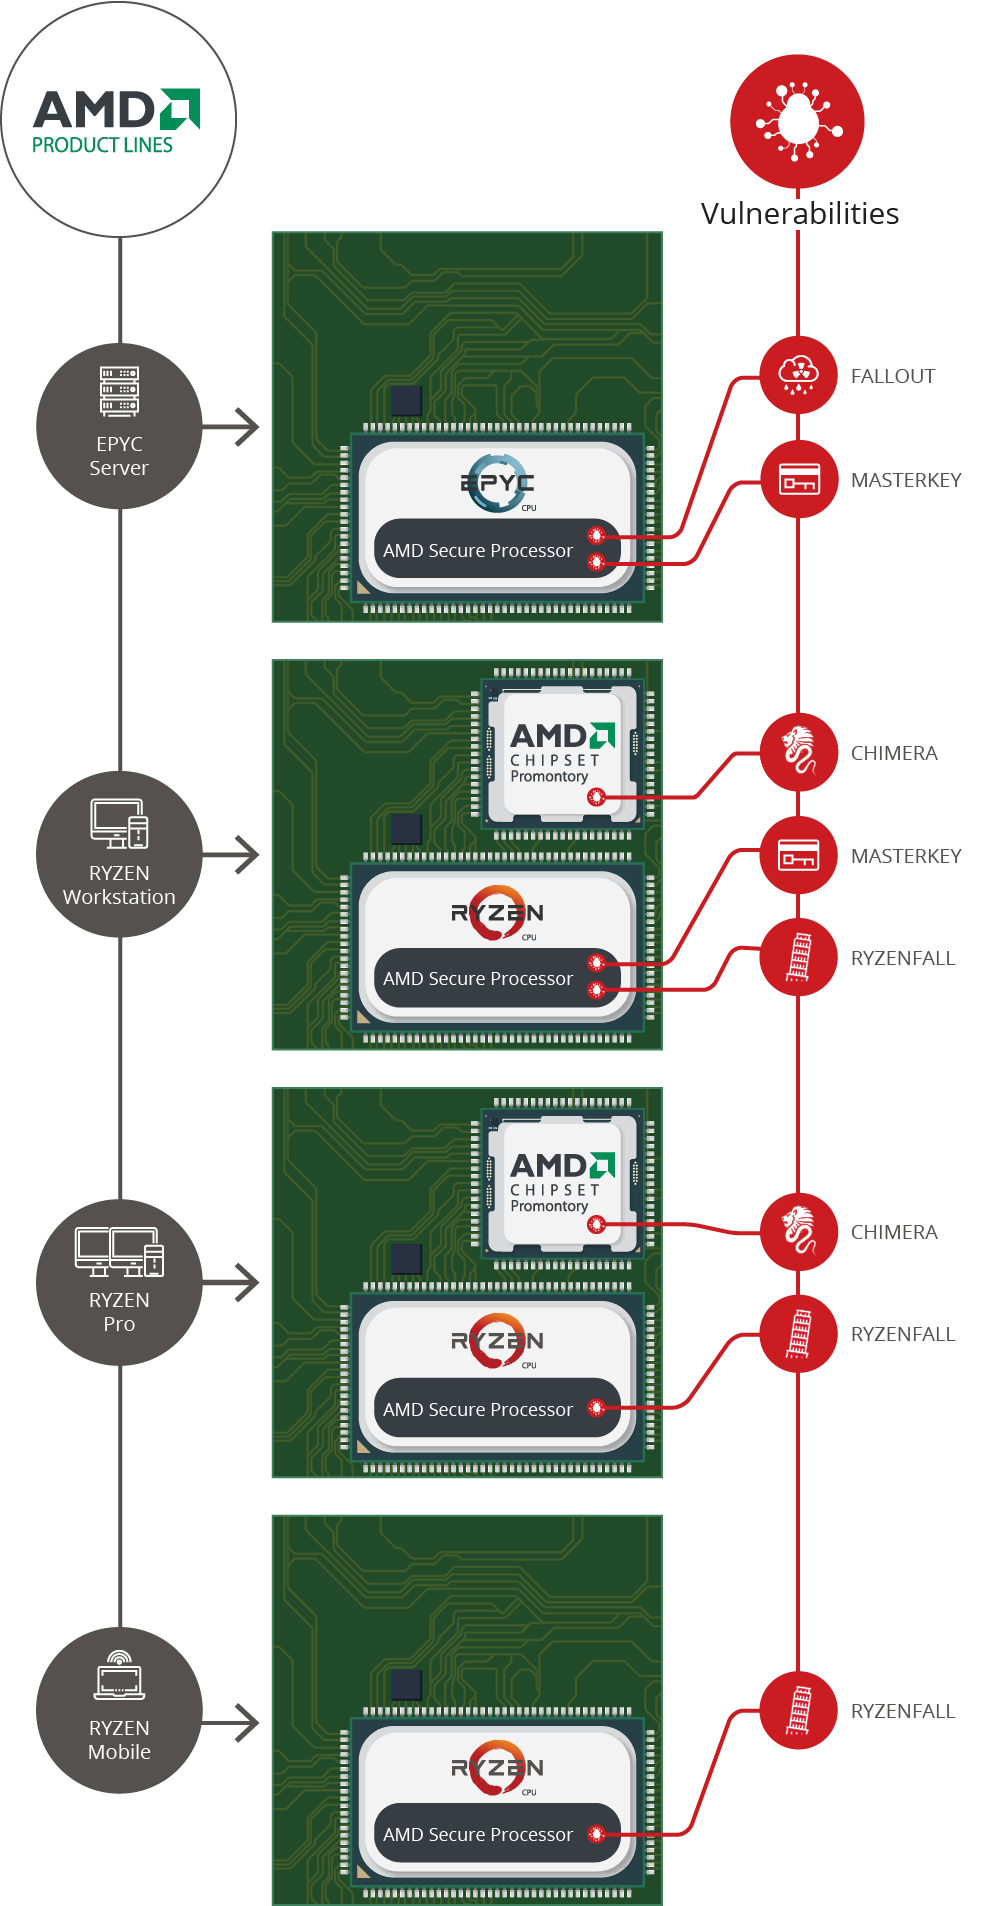 Evidence Suggests Attack on AMD Security Was Financially Motivated